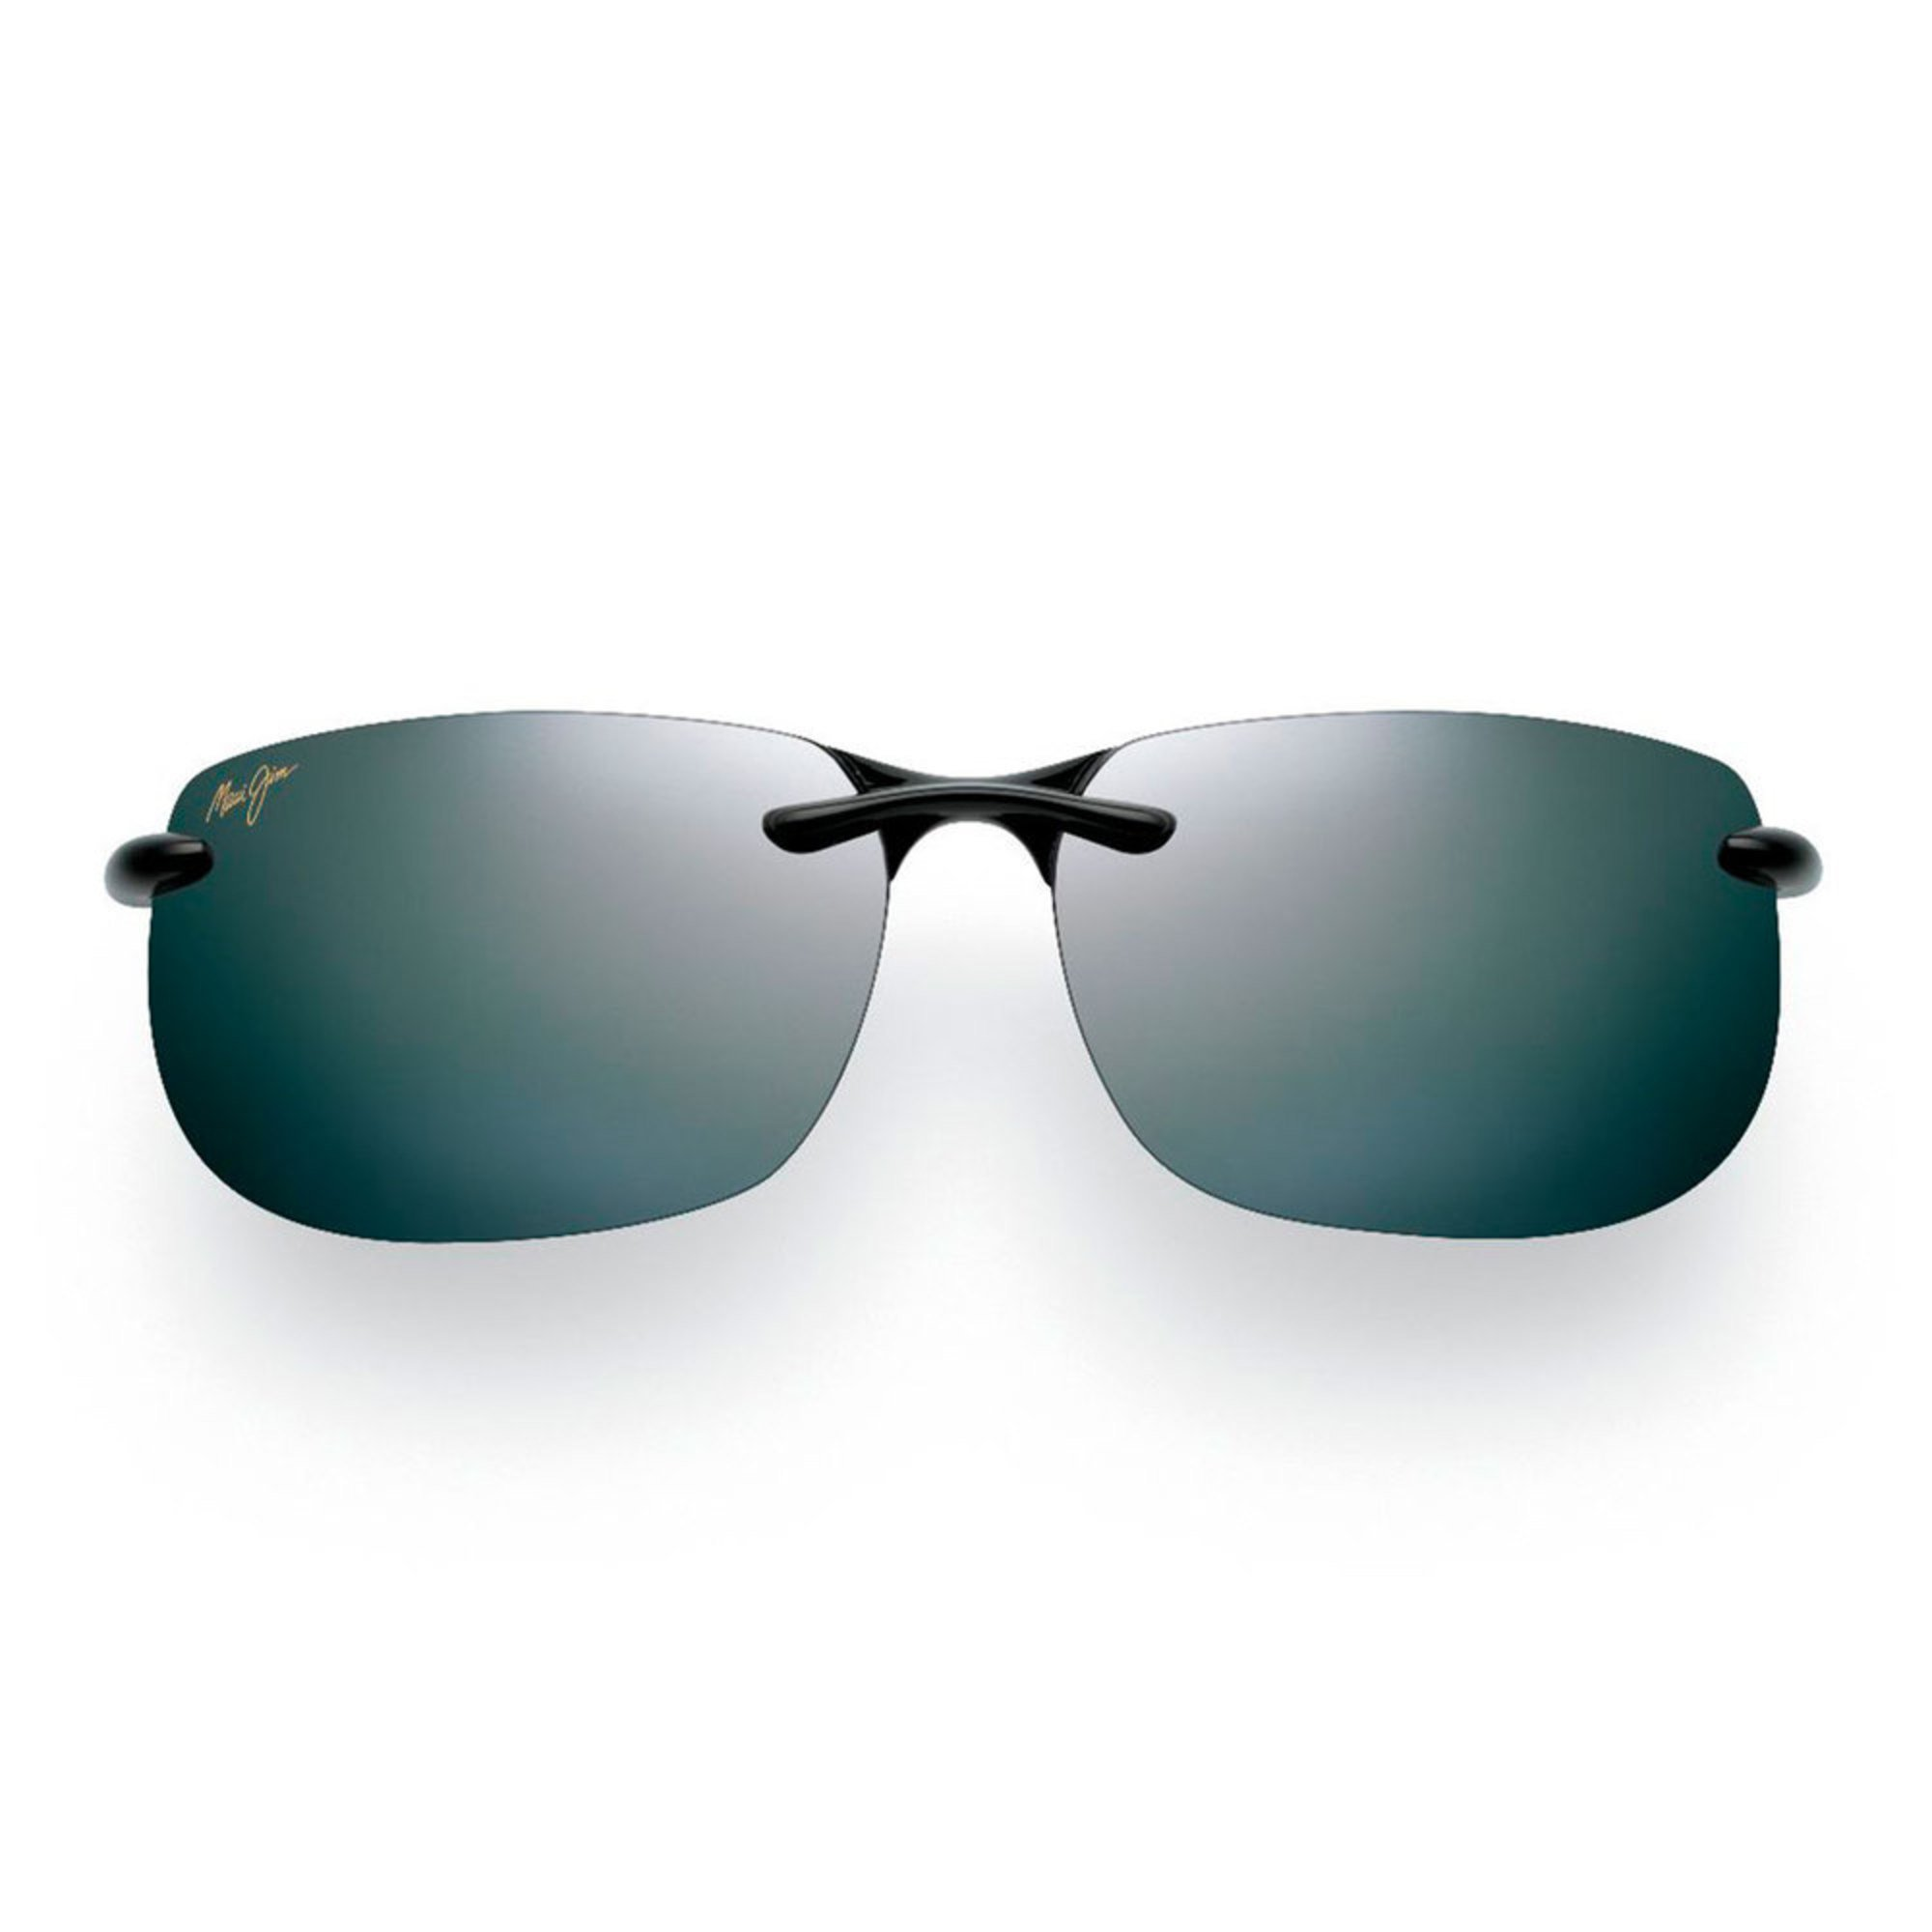 a6a26cbdb2fe Maui Jim Men's Banyans Gloss Black Rimless Sunglasses | Men's ...